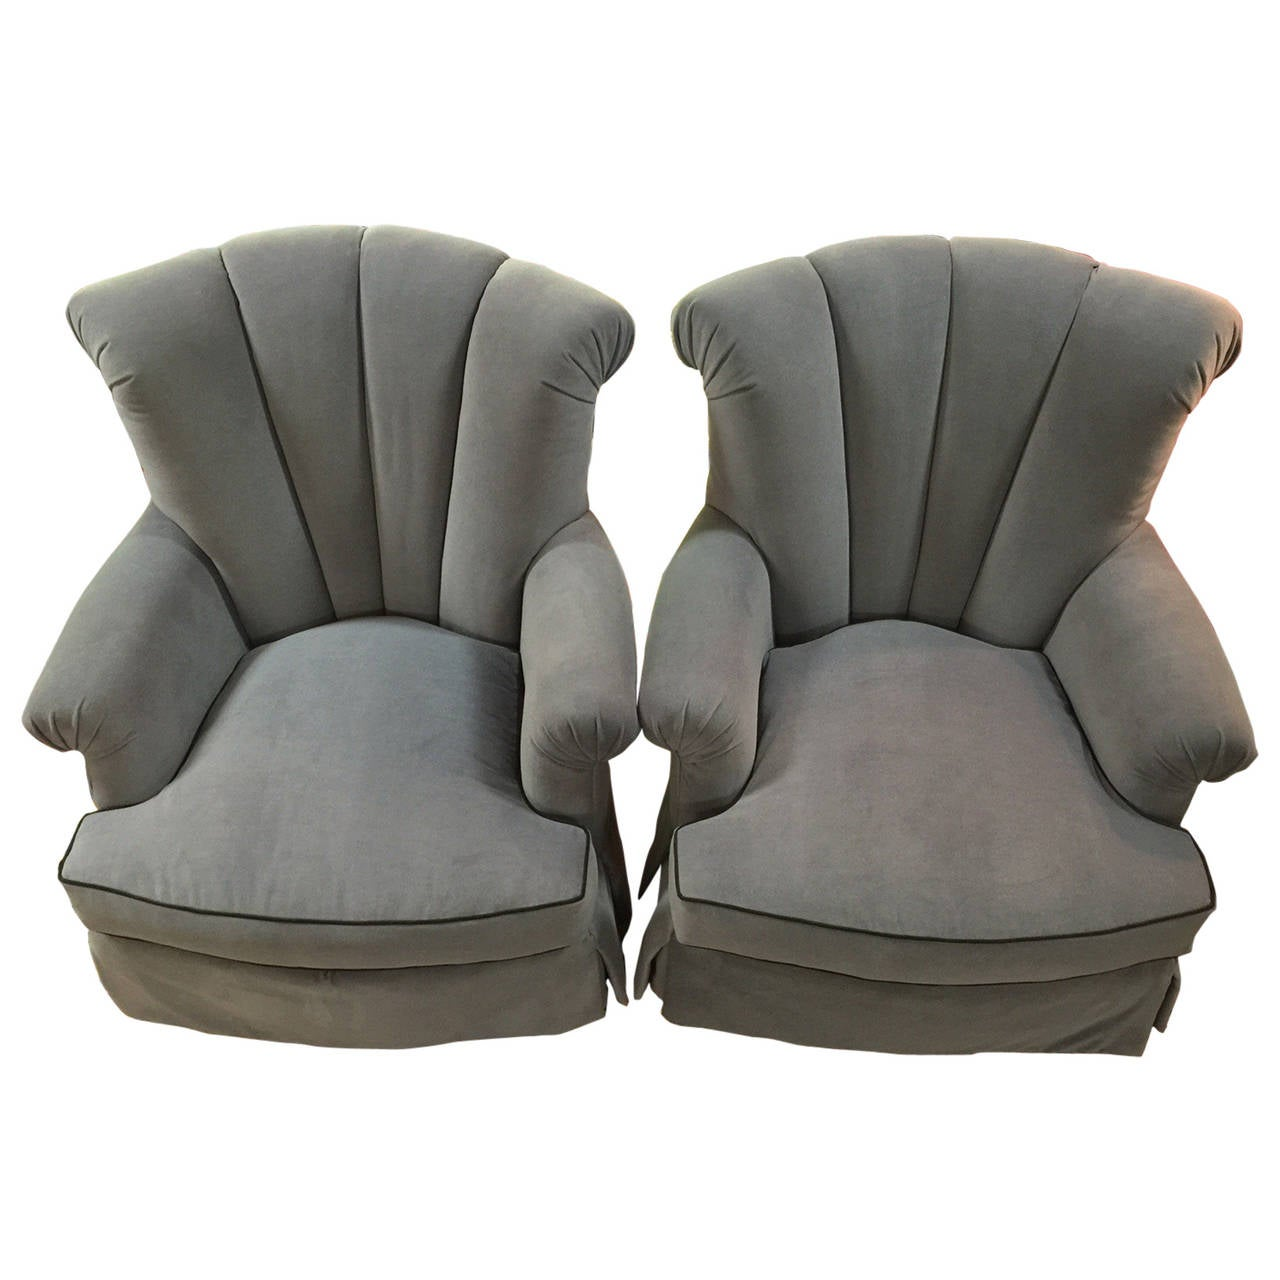 marge carson overstuffed armchairs with swivel at 1stdibs